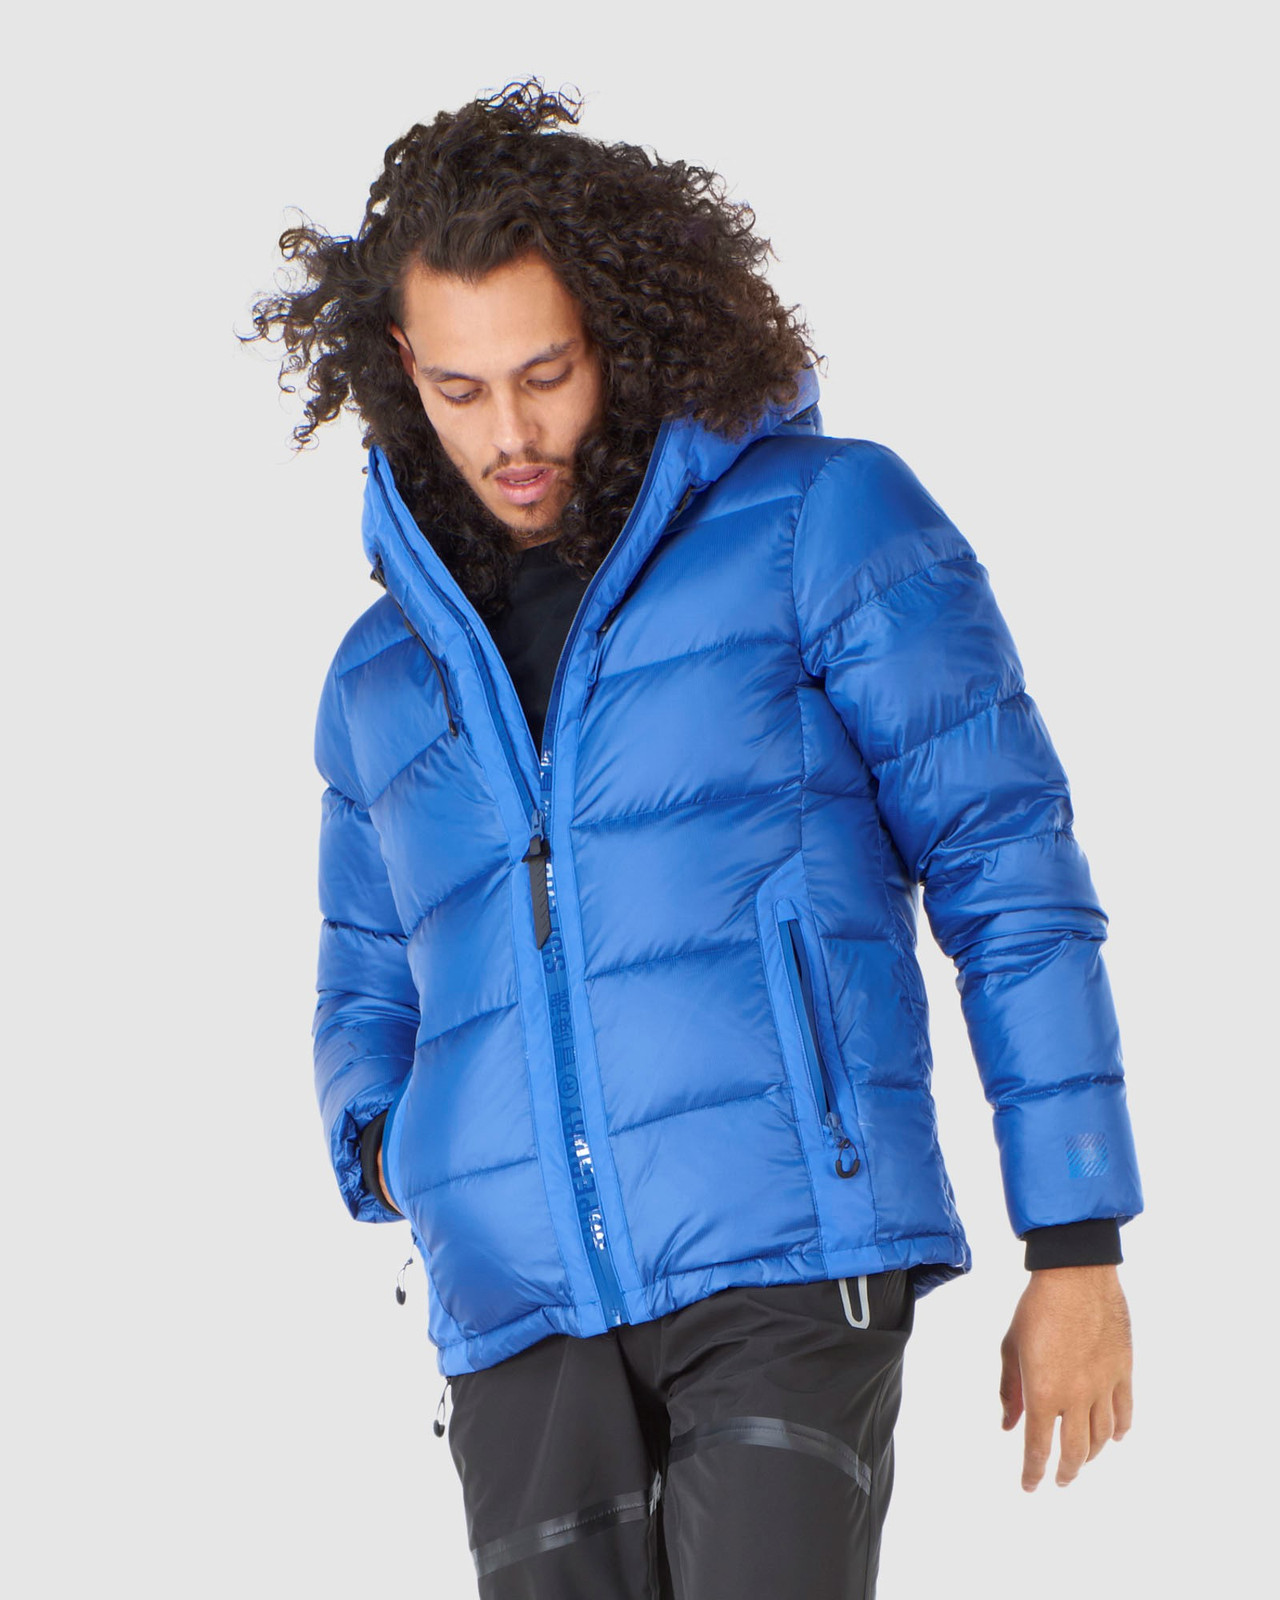 Superdry Mens MOUNTAIN PRO RACER PUFFER Blue Green Snow Jackets 0